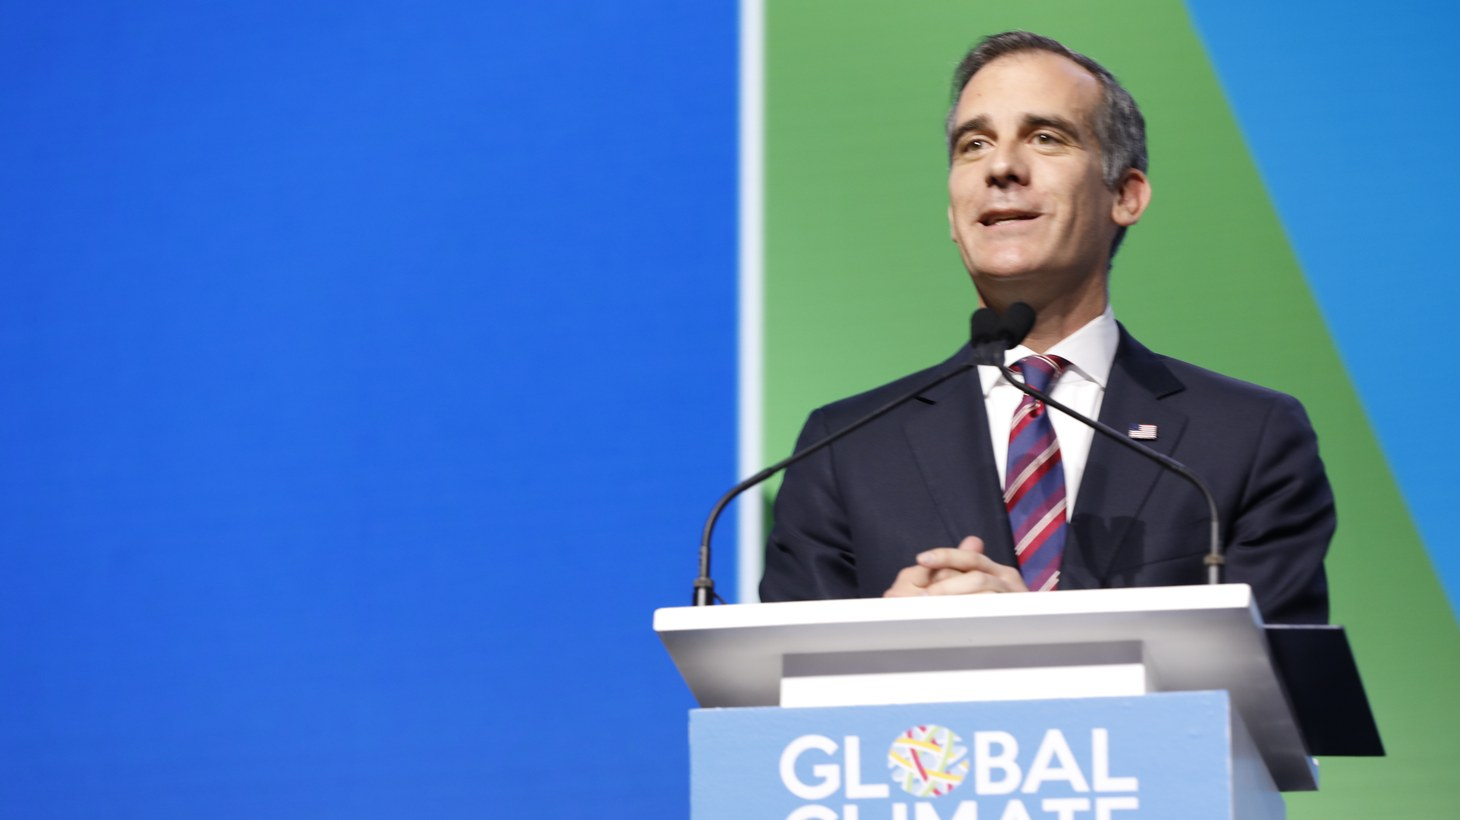 Mayor Eric Garcetti at the Global Action Climate Summit.